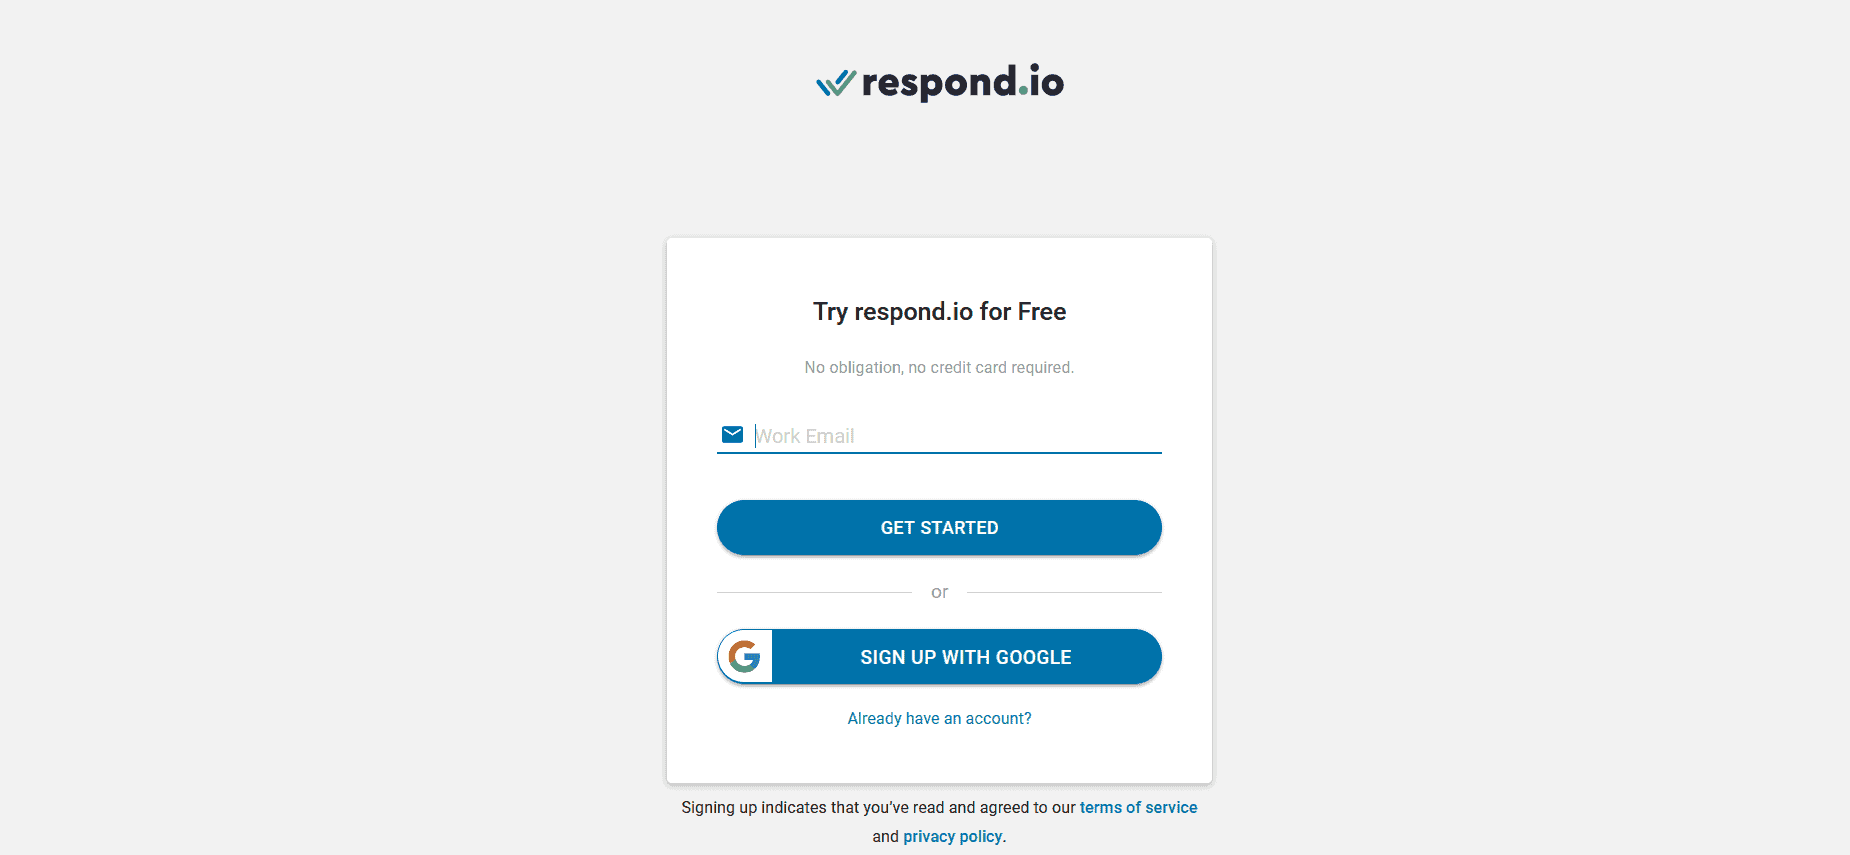 How to register on Respond.io